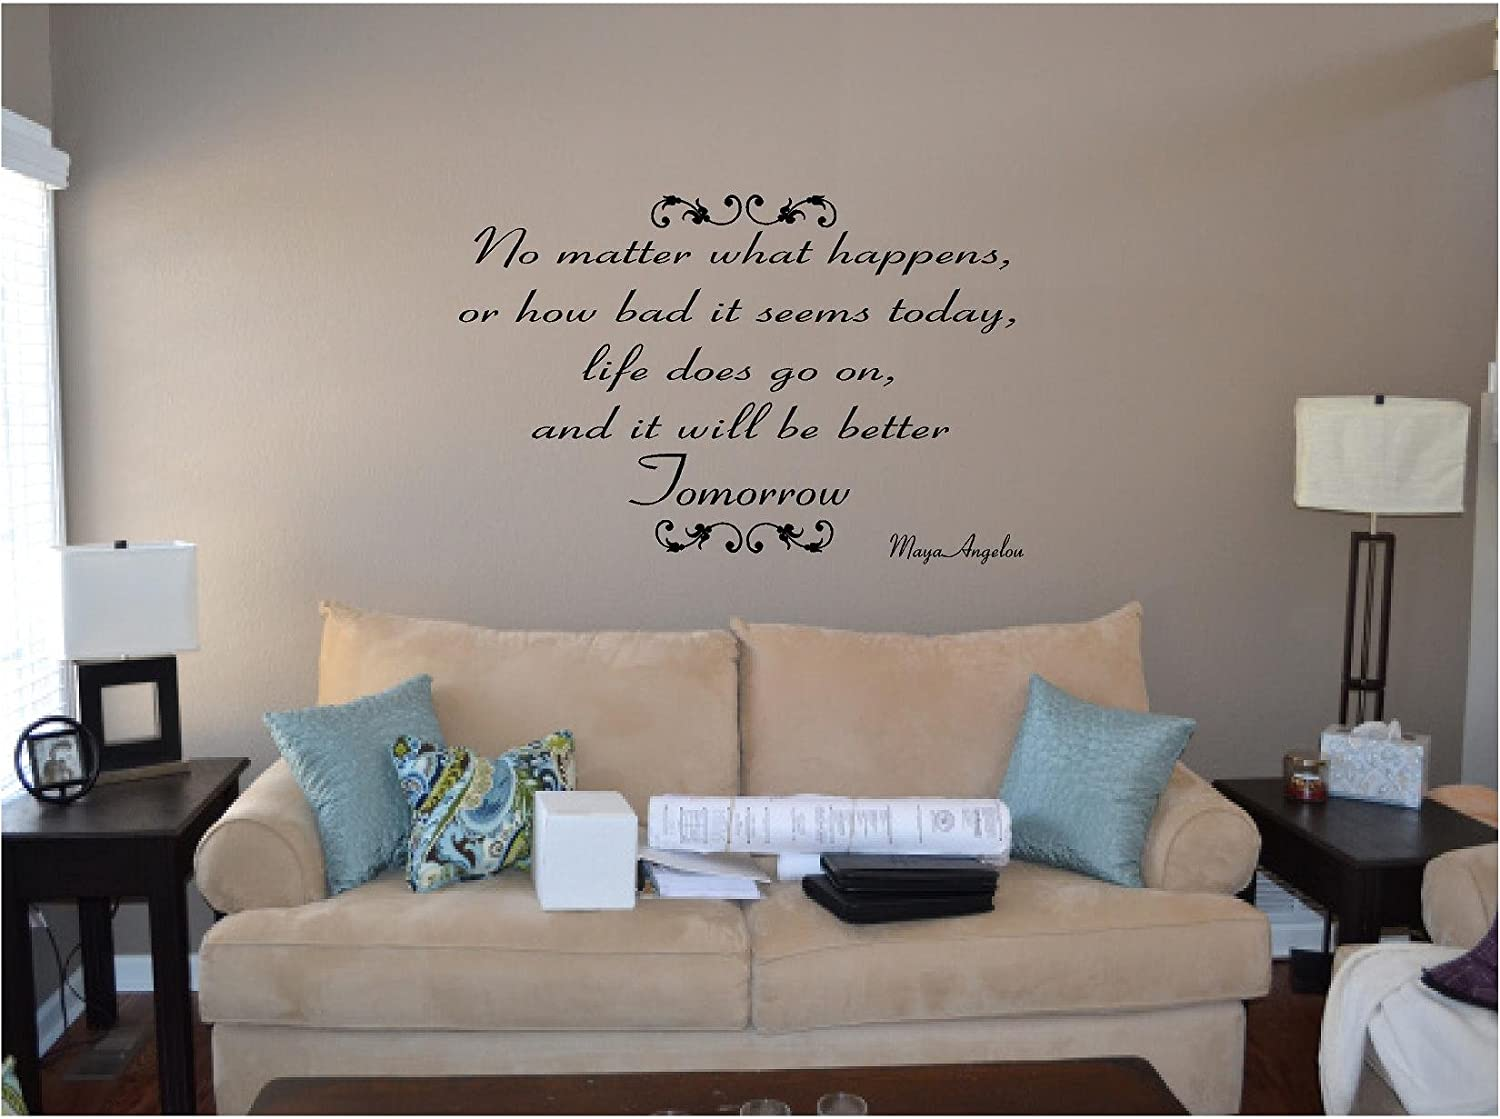 Quote it maya angelou it will be better tomorrow inspirational quote it maya angelou it will be better tomorrow inspirational quote saying wall sticker decal transfer vinyl wall decal vinyl stickers love romance amipublicfo Images